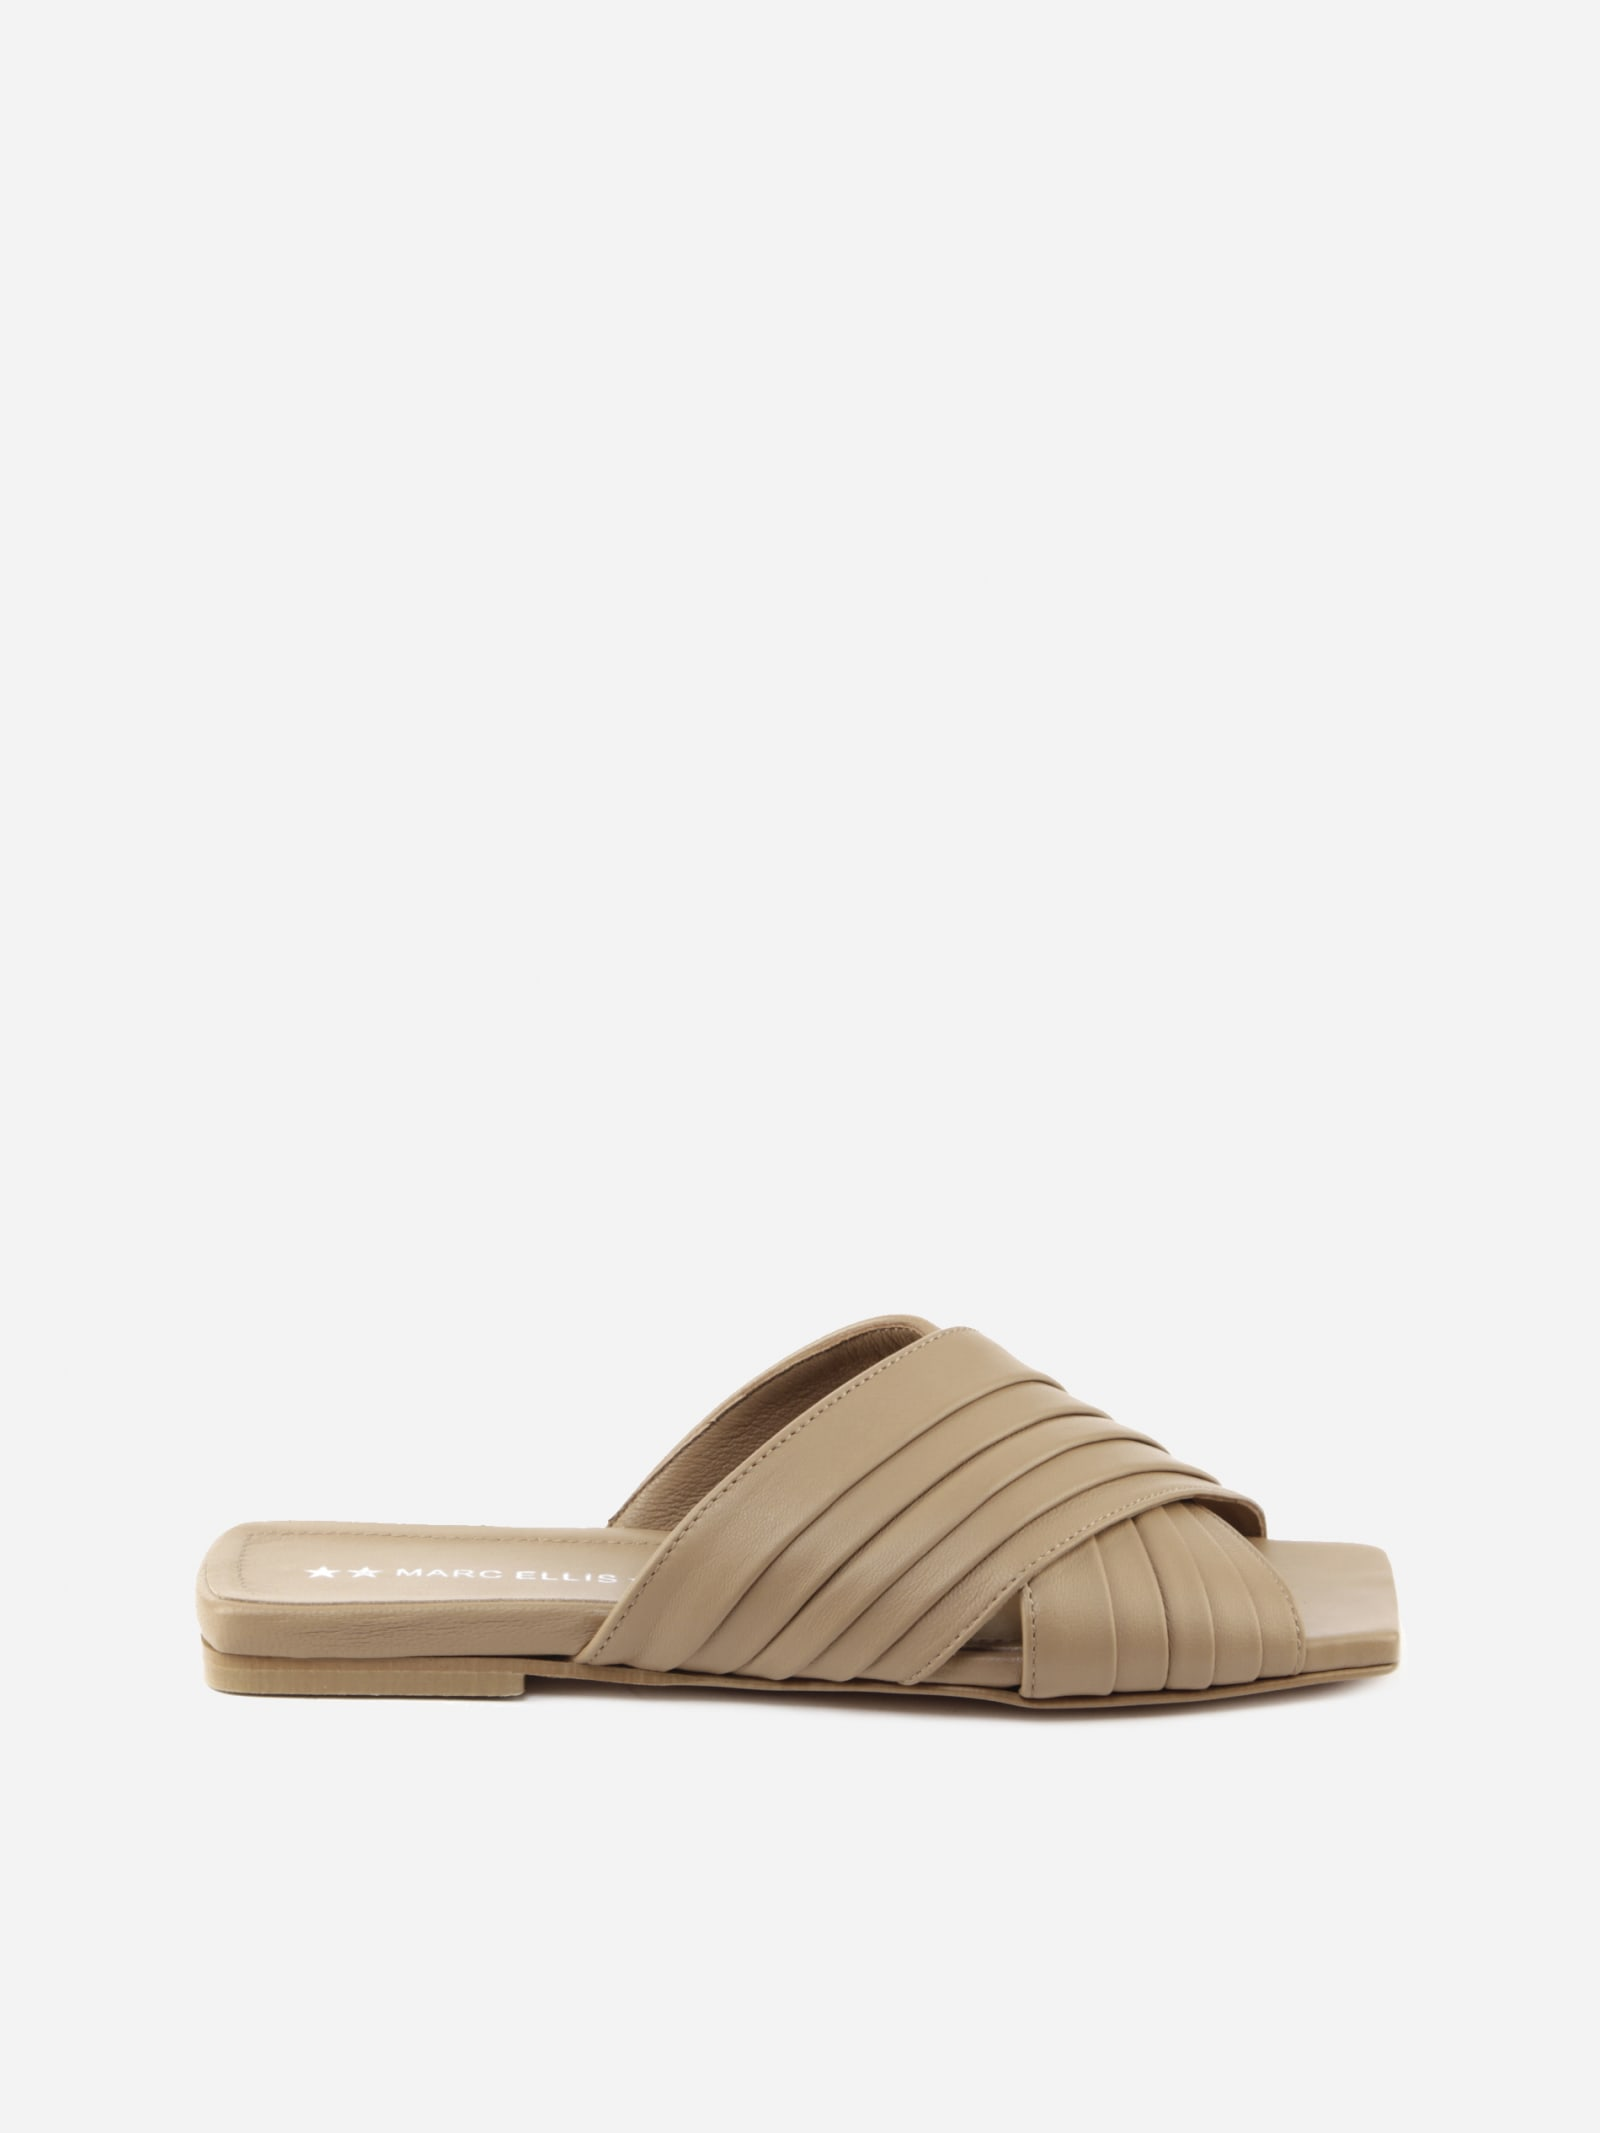 Carrye Flat Sandals In Leather